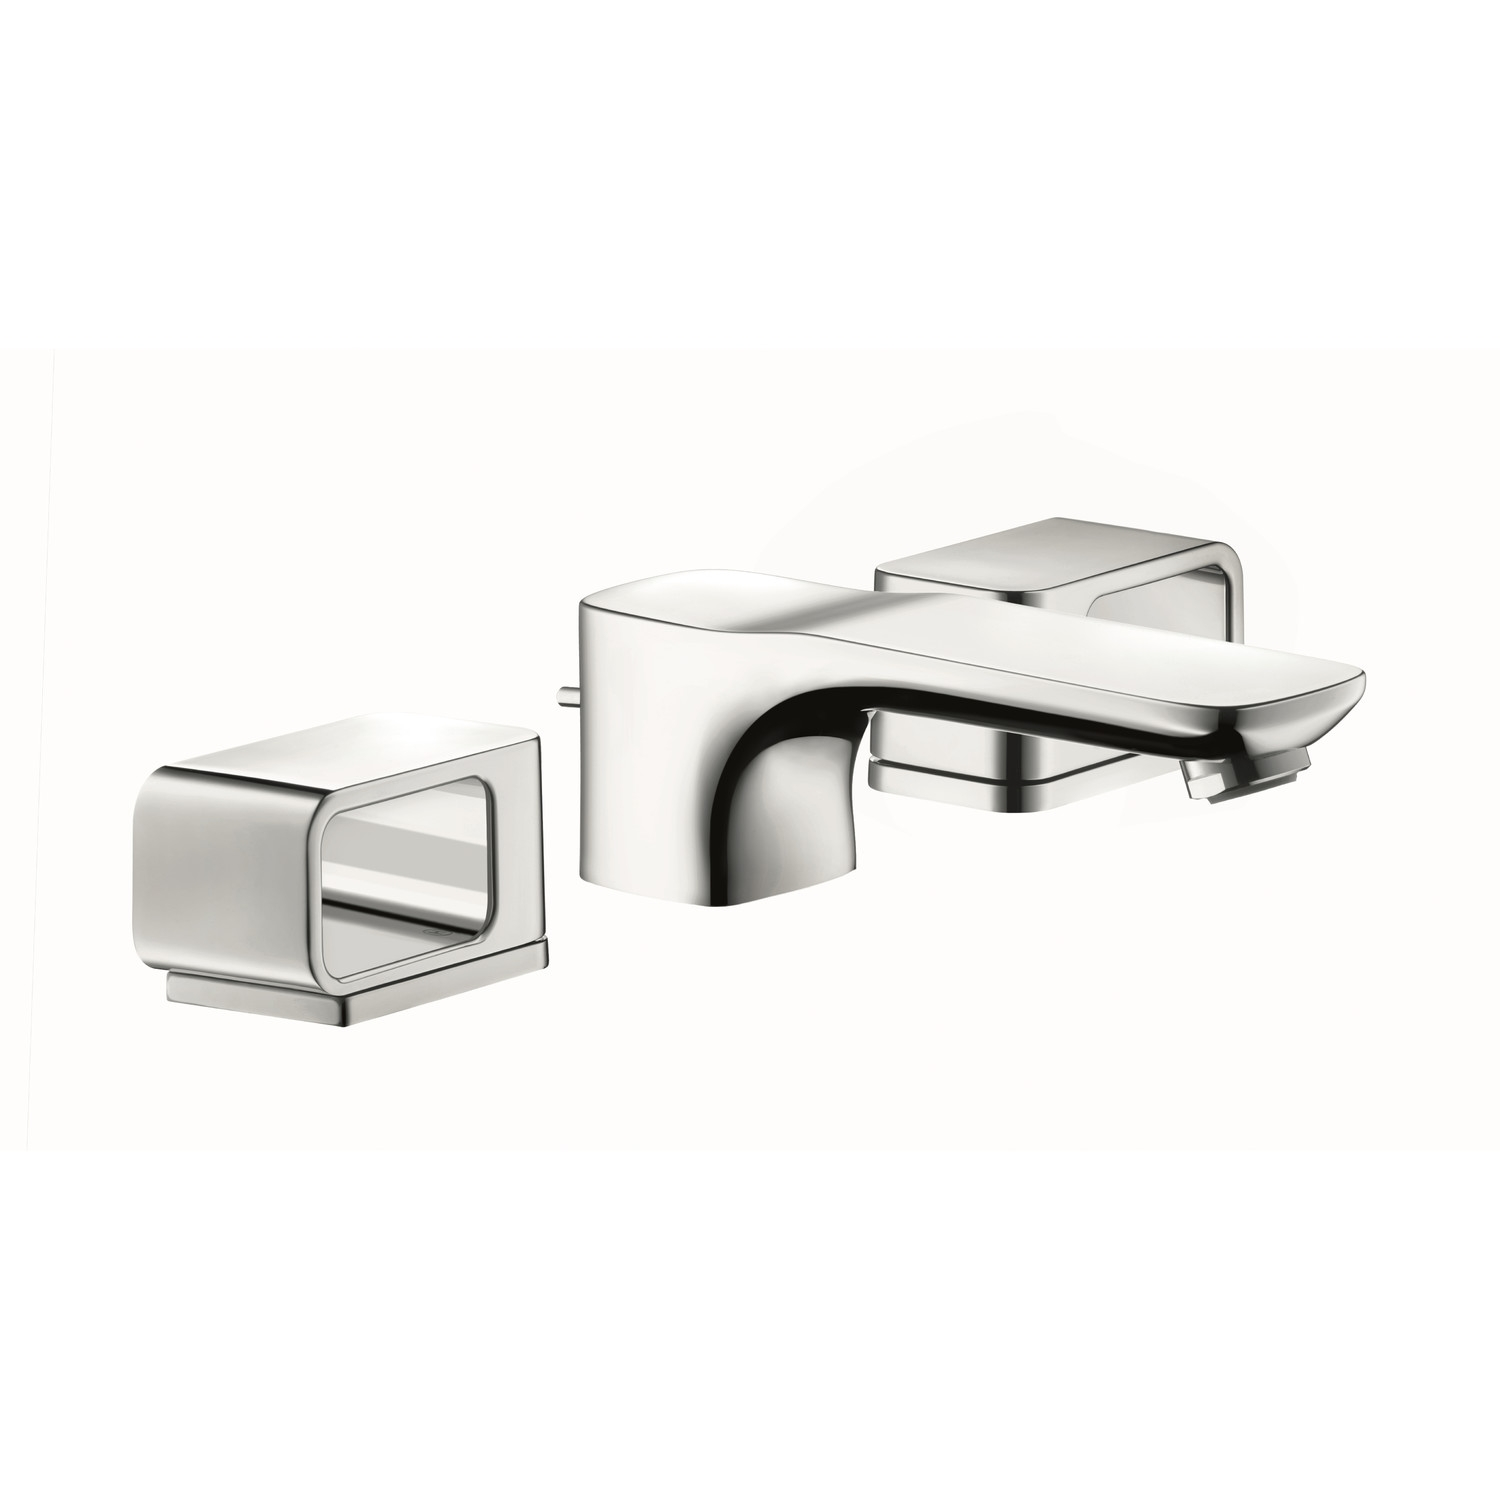 Ideas, hansgrohe axor bathroom sink faucets hansgrohe axor bathroom sink faucets 48 hansgrohe axor shower valve hansgrohe shower spares hansgrohe 1500 x 1500  .